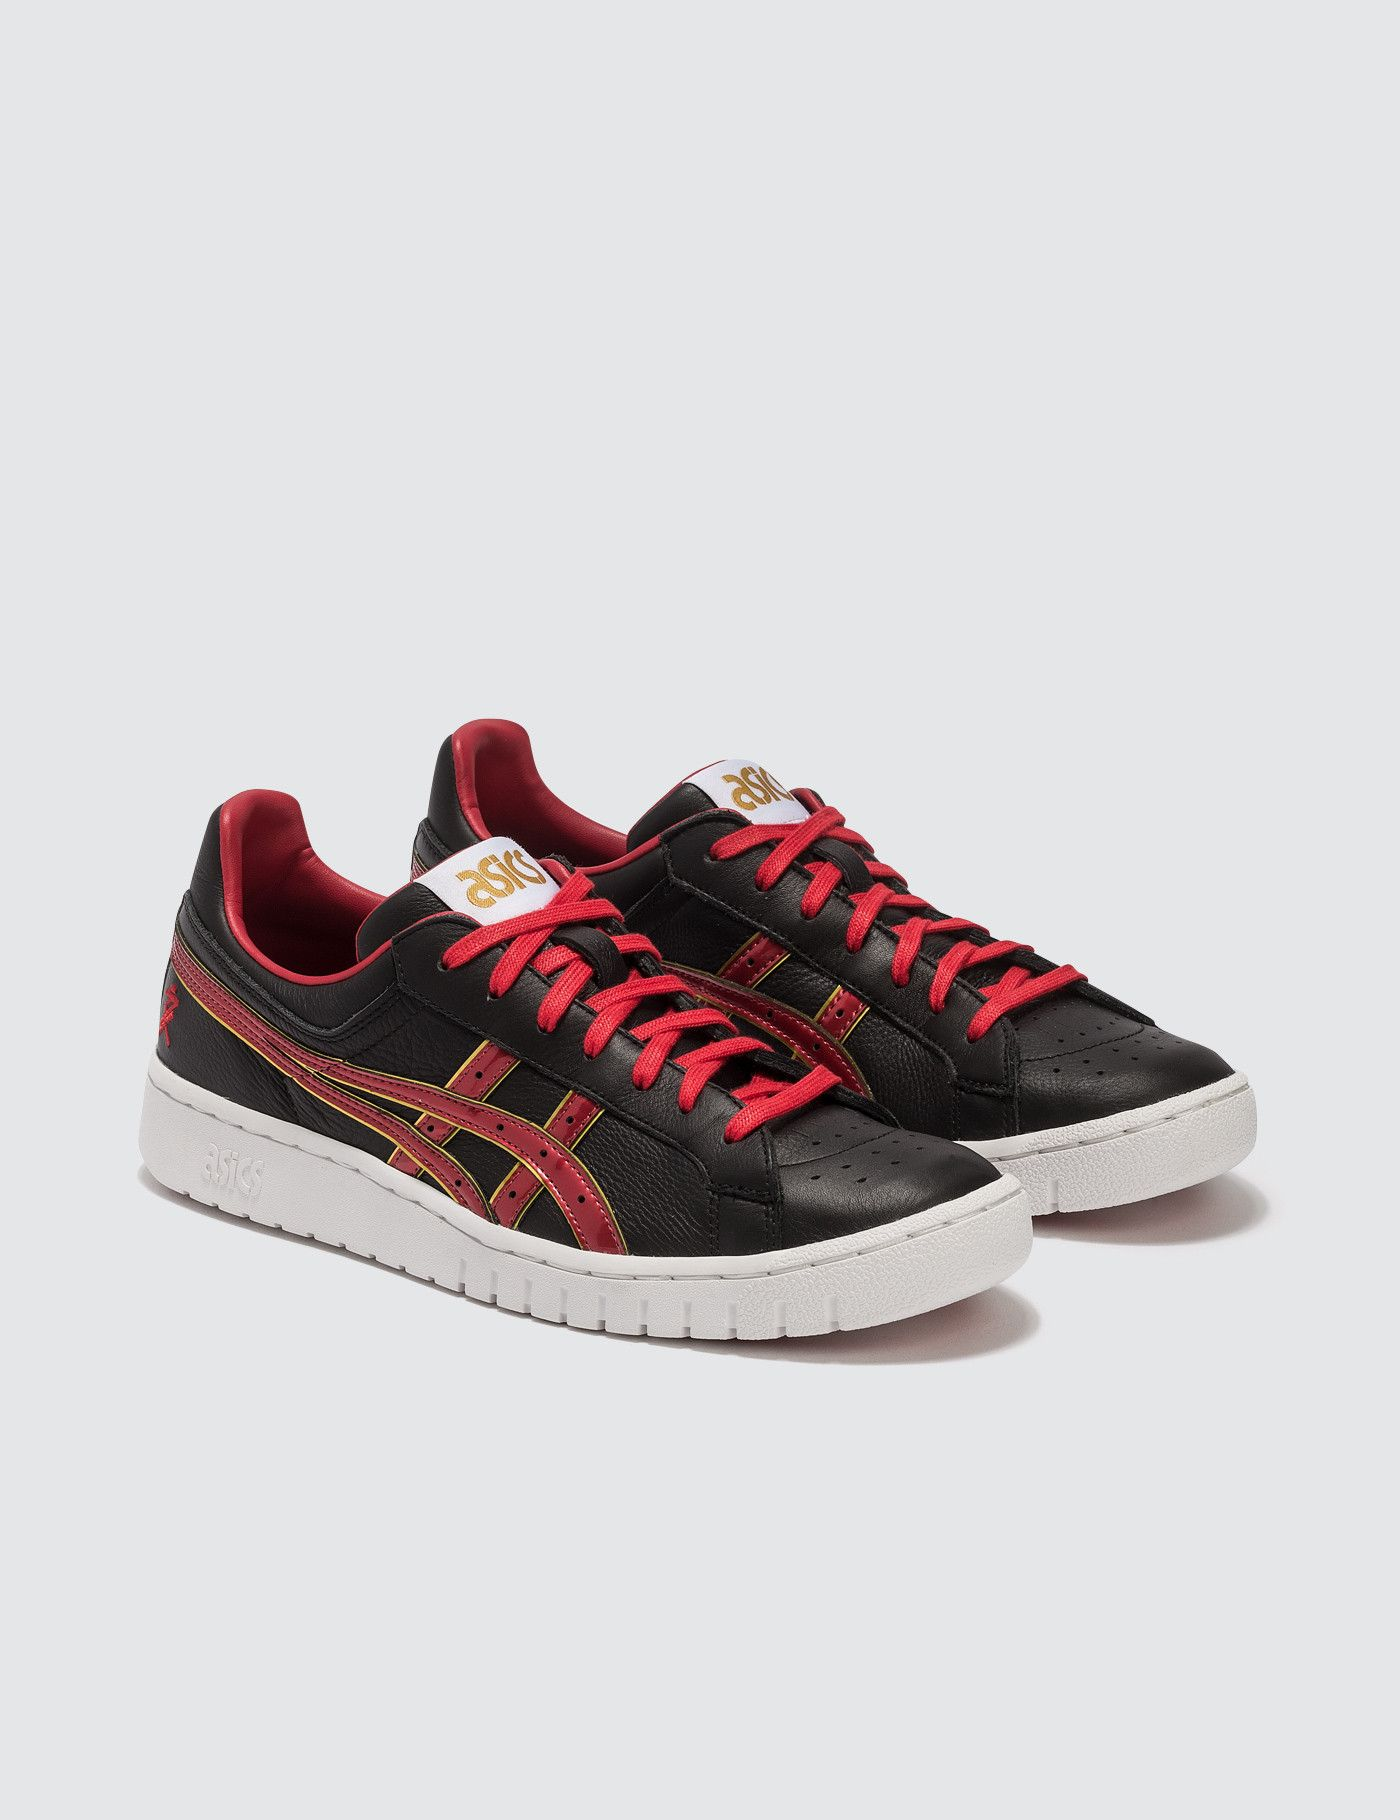 """Asics GelPTG """"Chinese New Year Pack"""" HBX in 2020"""